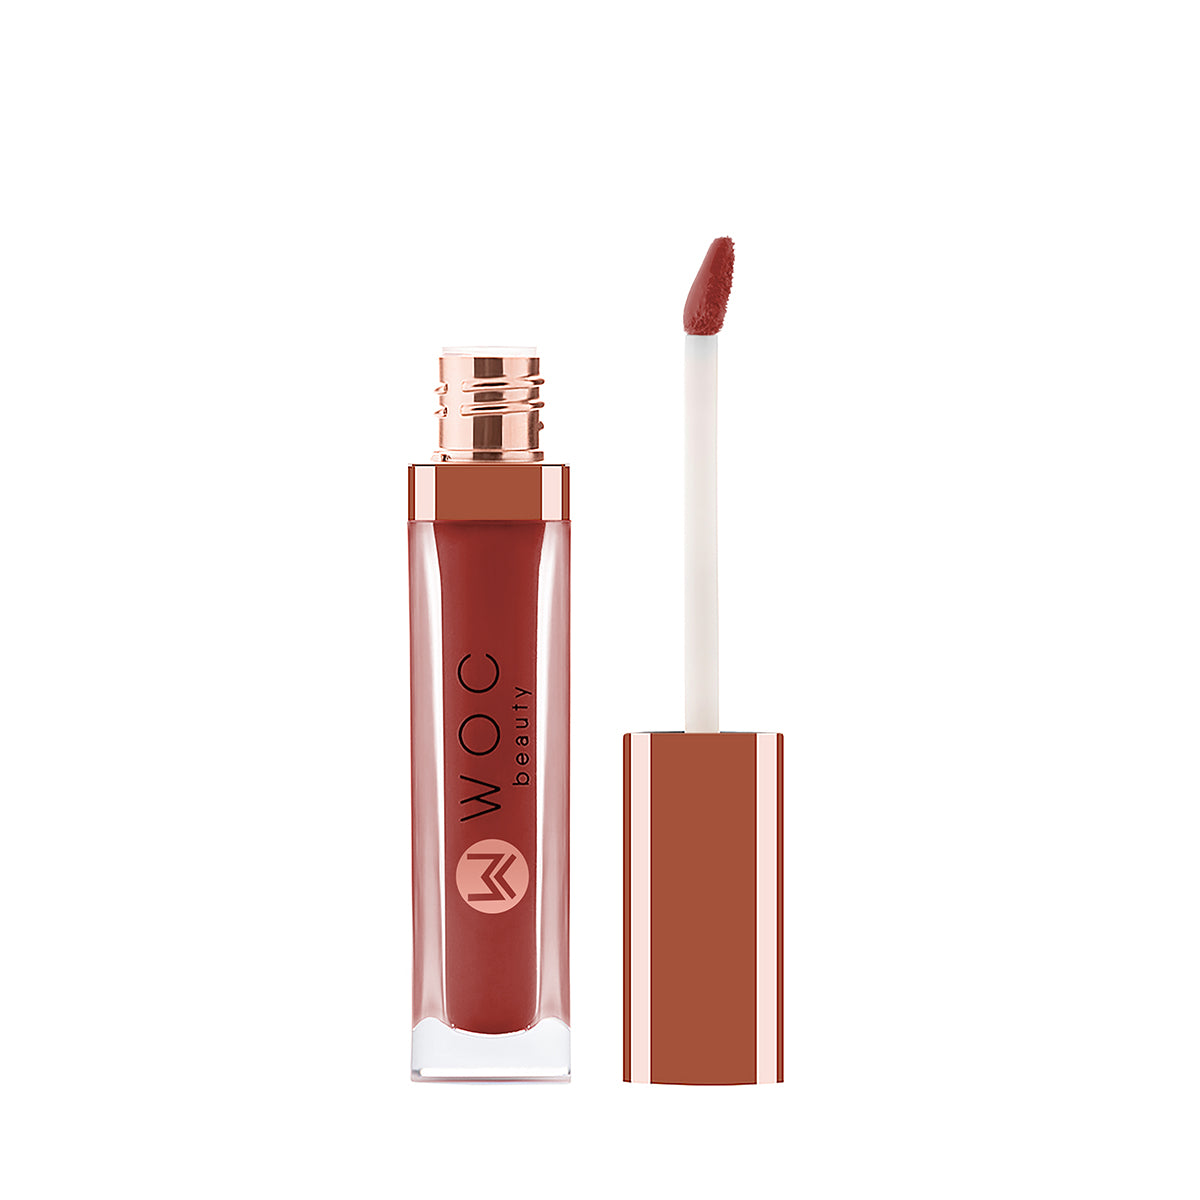 WOC Beauty Stellar Matte Lip Potion - Hotheaded (Brick Red)